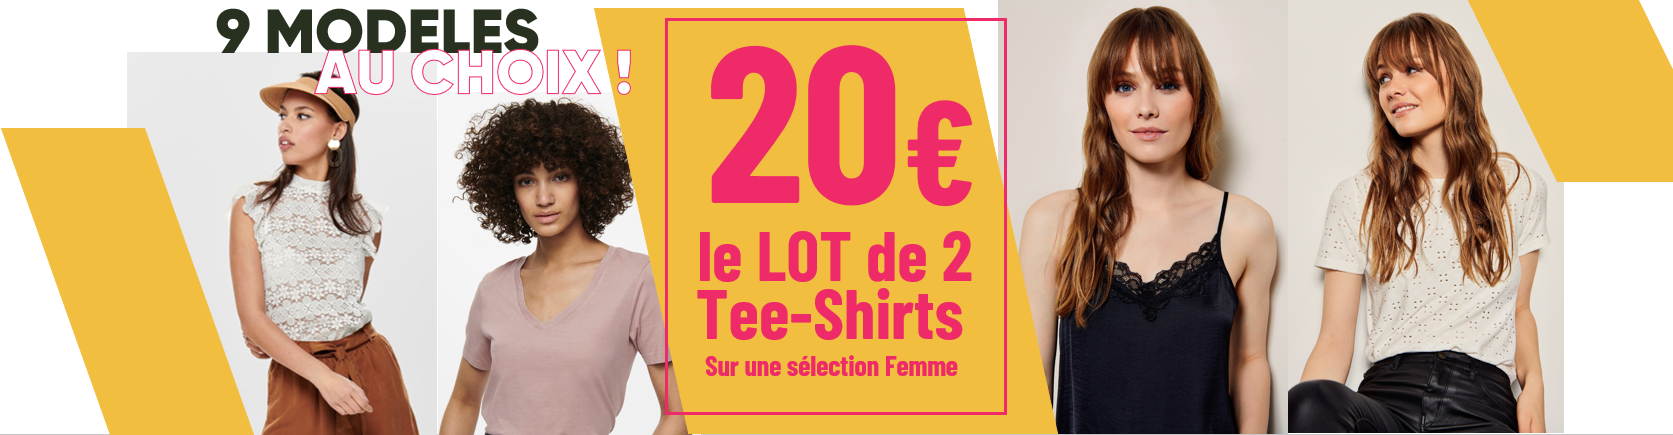 CATALOGUE AVRIL 21 -- 20€ les 2 tee shirts femme